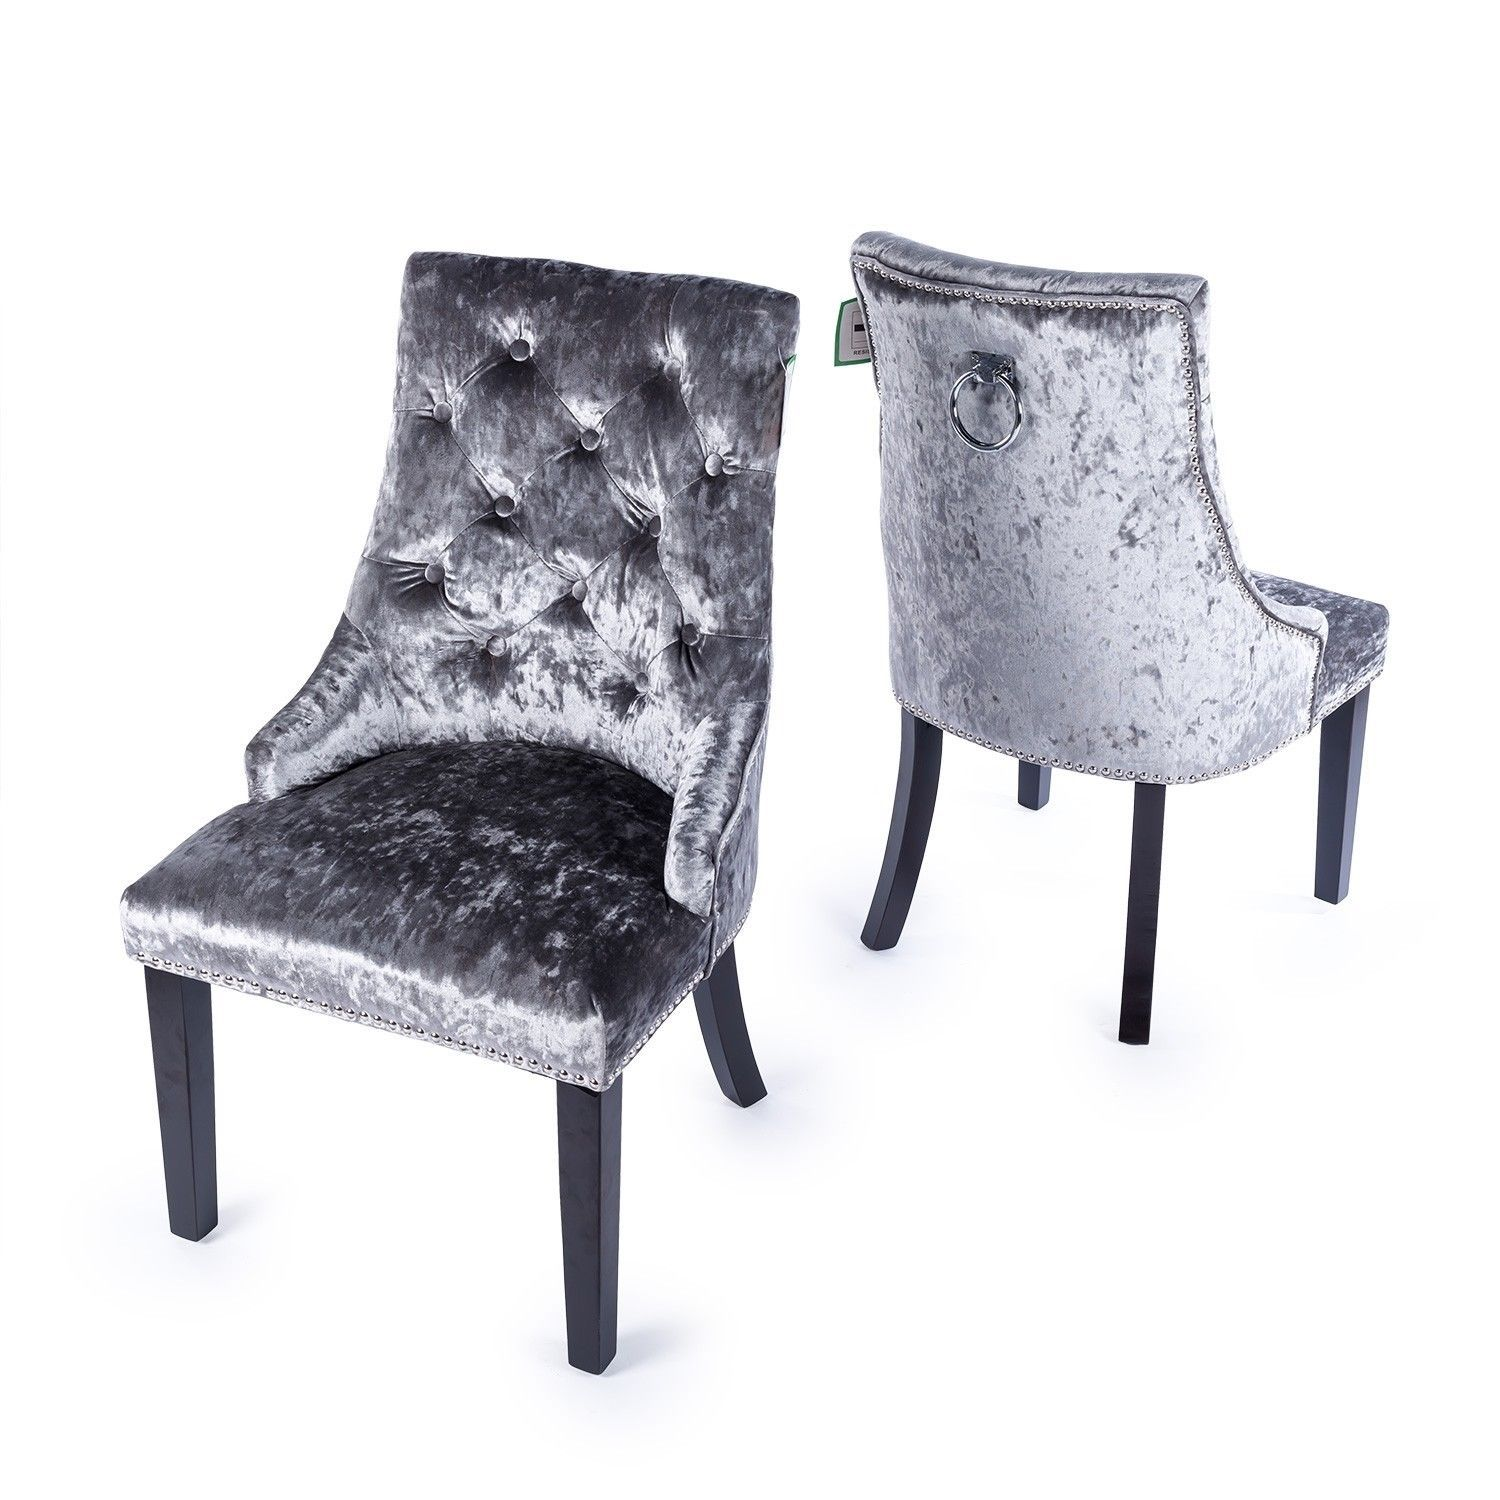 CHARCOAL DARK GREY CRUSHED VELVET STUDDED DINING OCCASIONAL BEDROOM CHAIR  RINGPULL TCDH-VL-K1-03